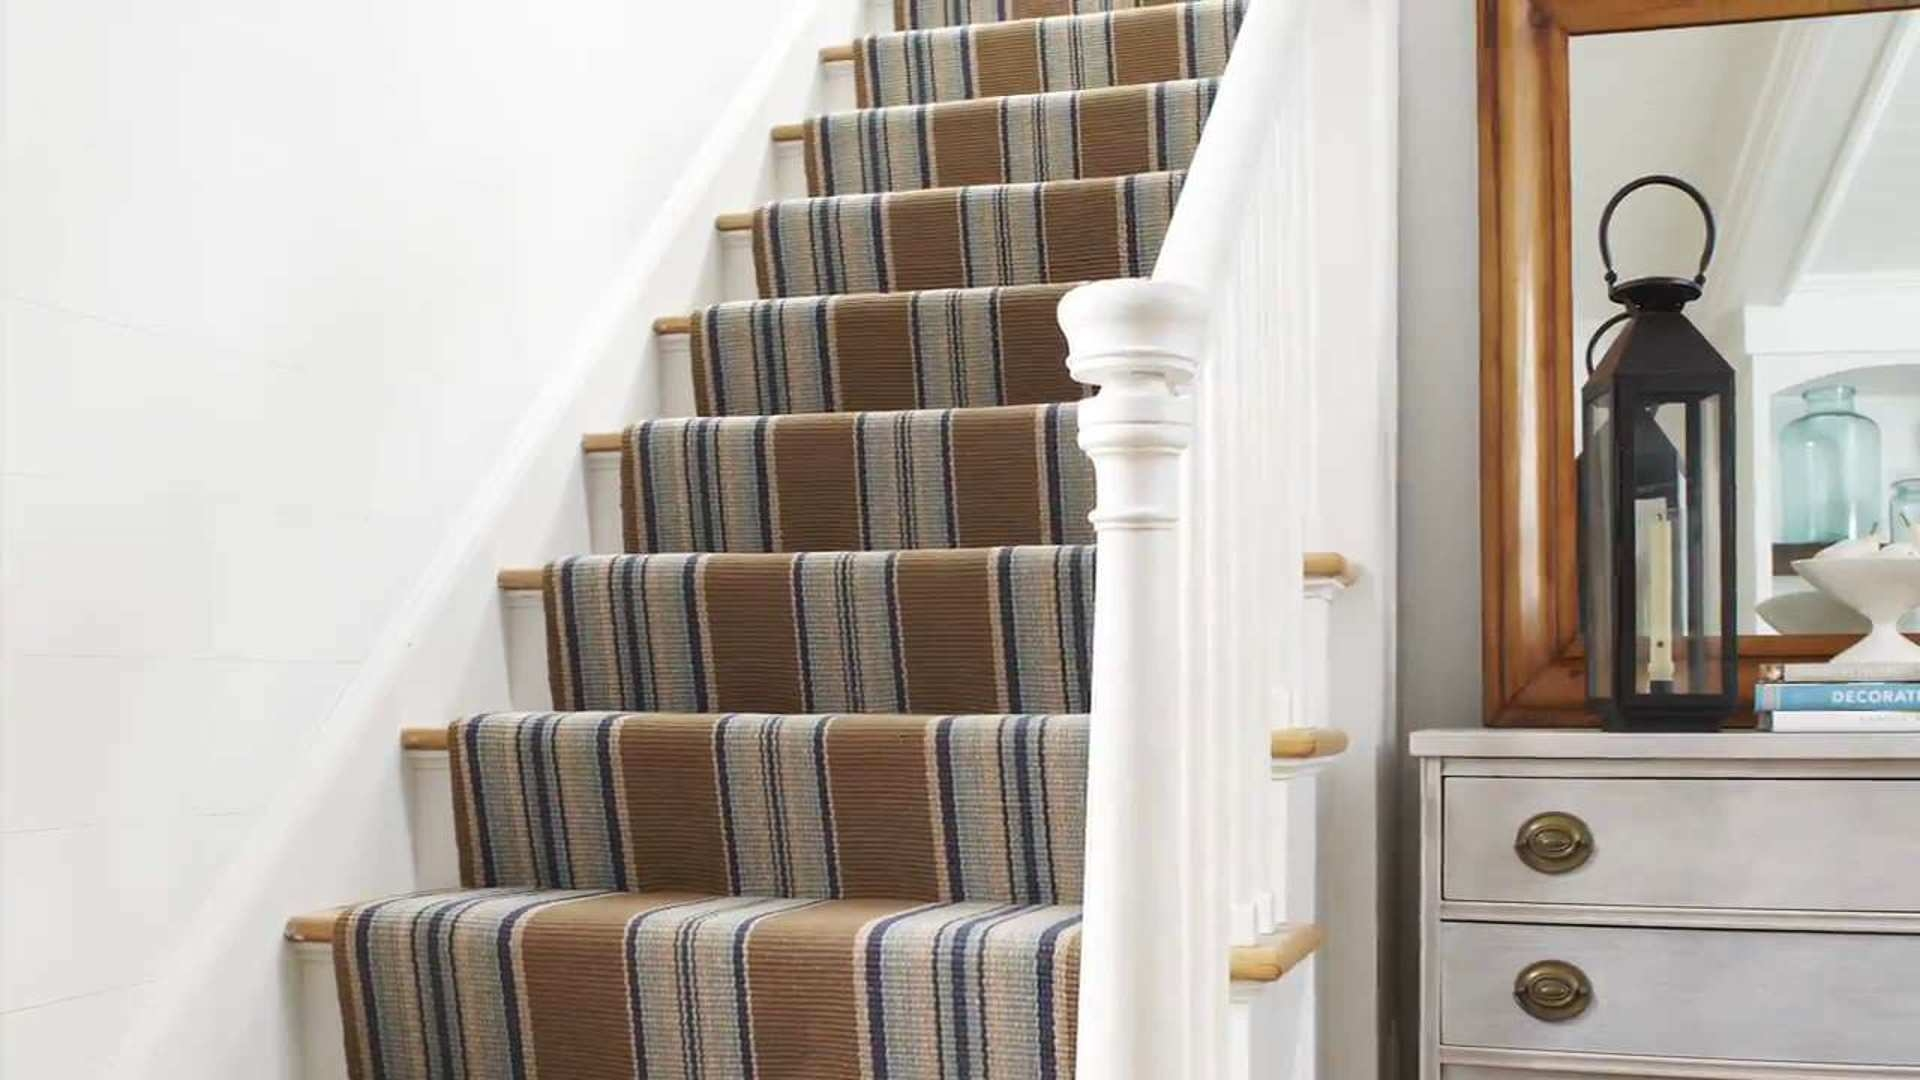 Stair Runner Carpet Learn How To Install One In 6 Steps This | End Of The Roll Stair Runners | Roger Oates | Staircase Makeover | Wall Carpet | Hallway Carpet | Stair Treads